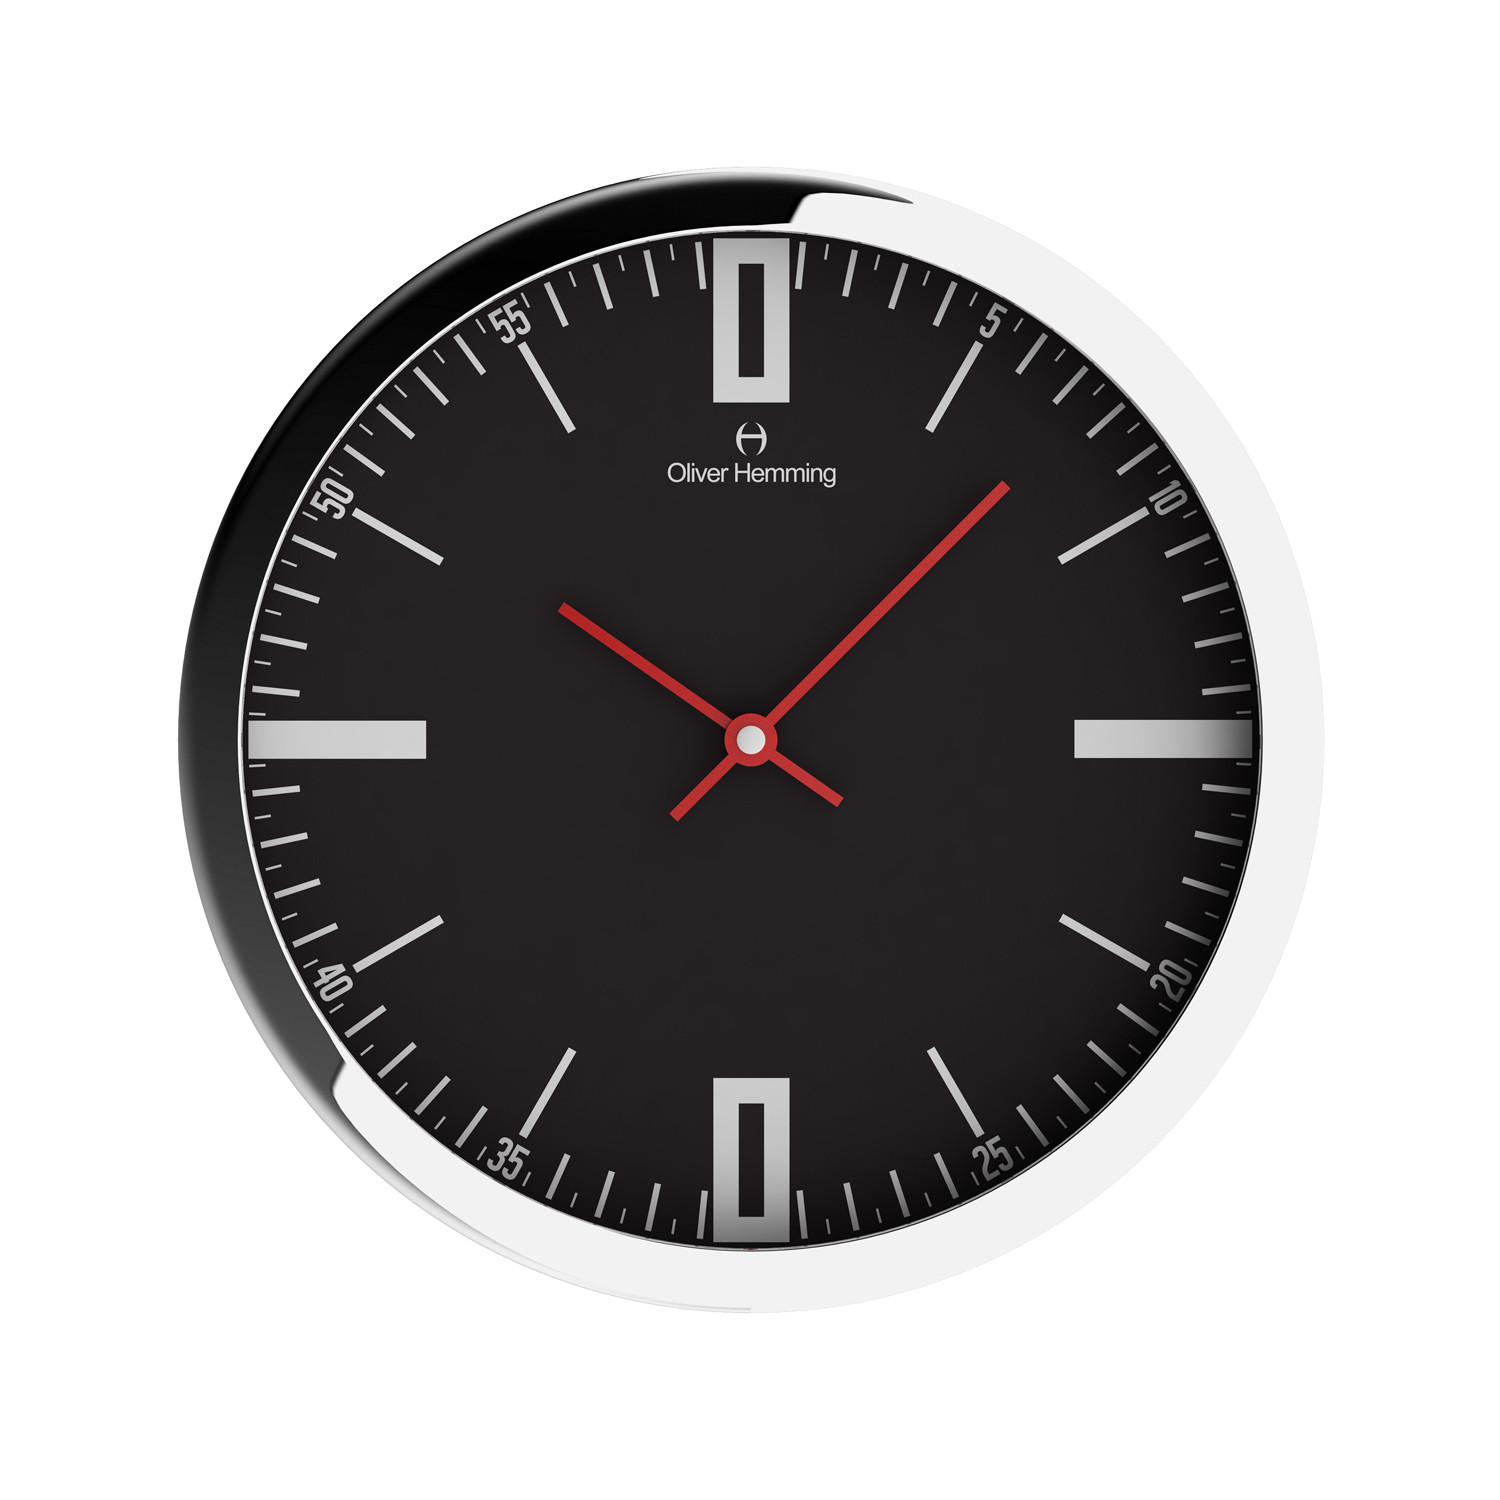 Chrome wall clock w303s45b oliver hemming wall clocks for Touch of modern clock